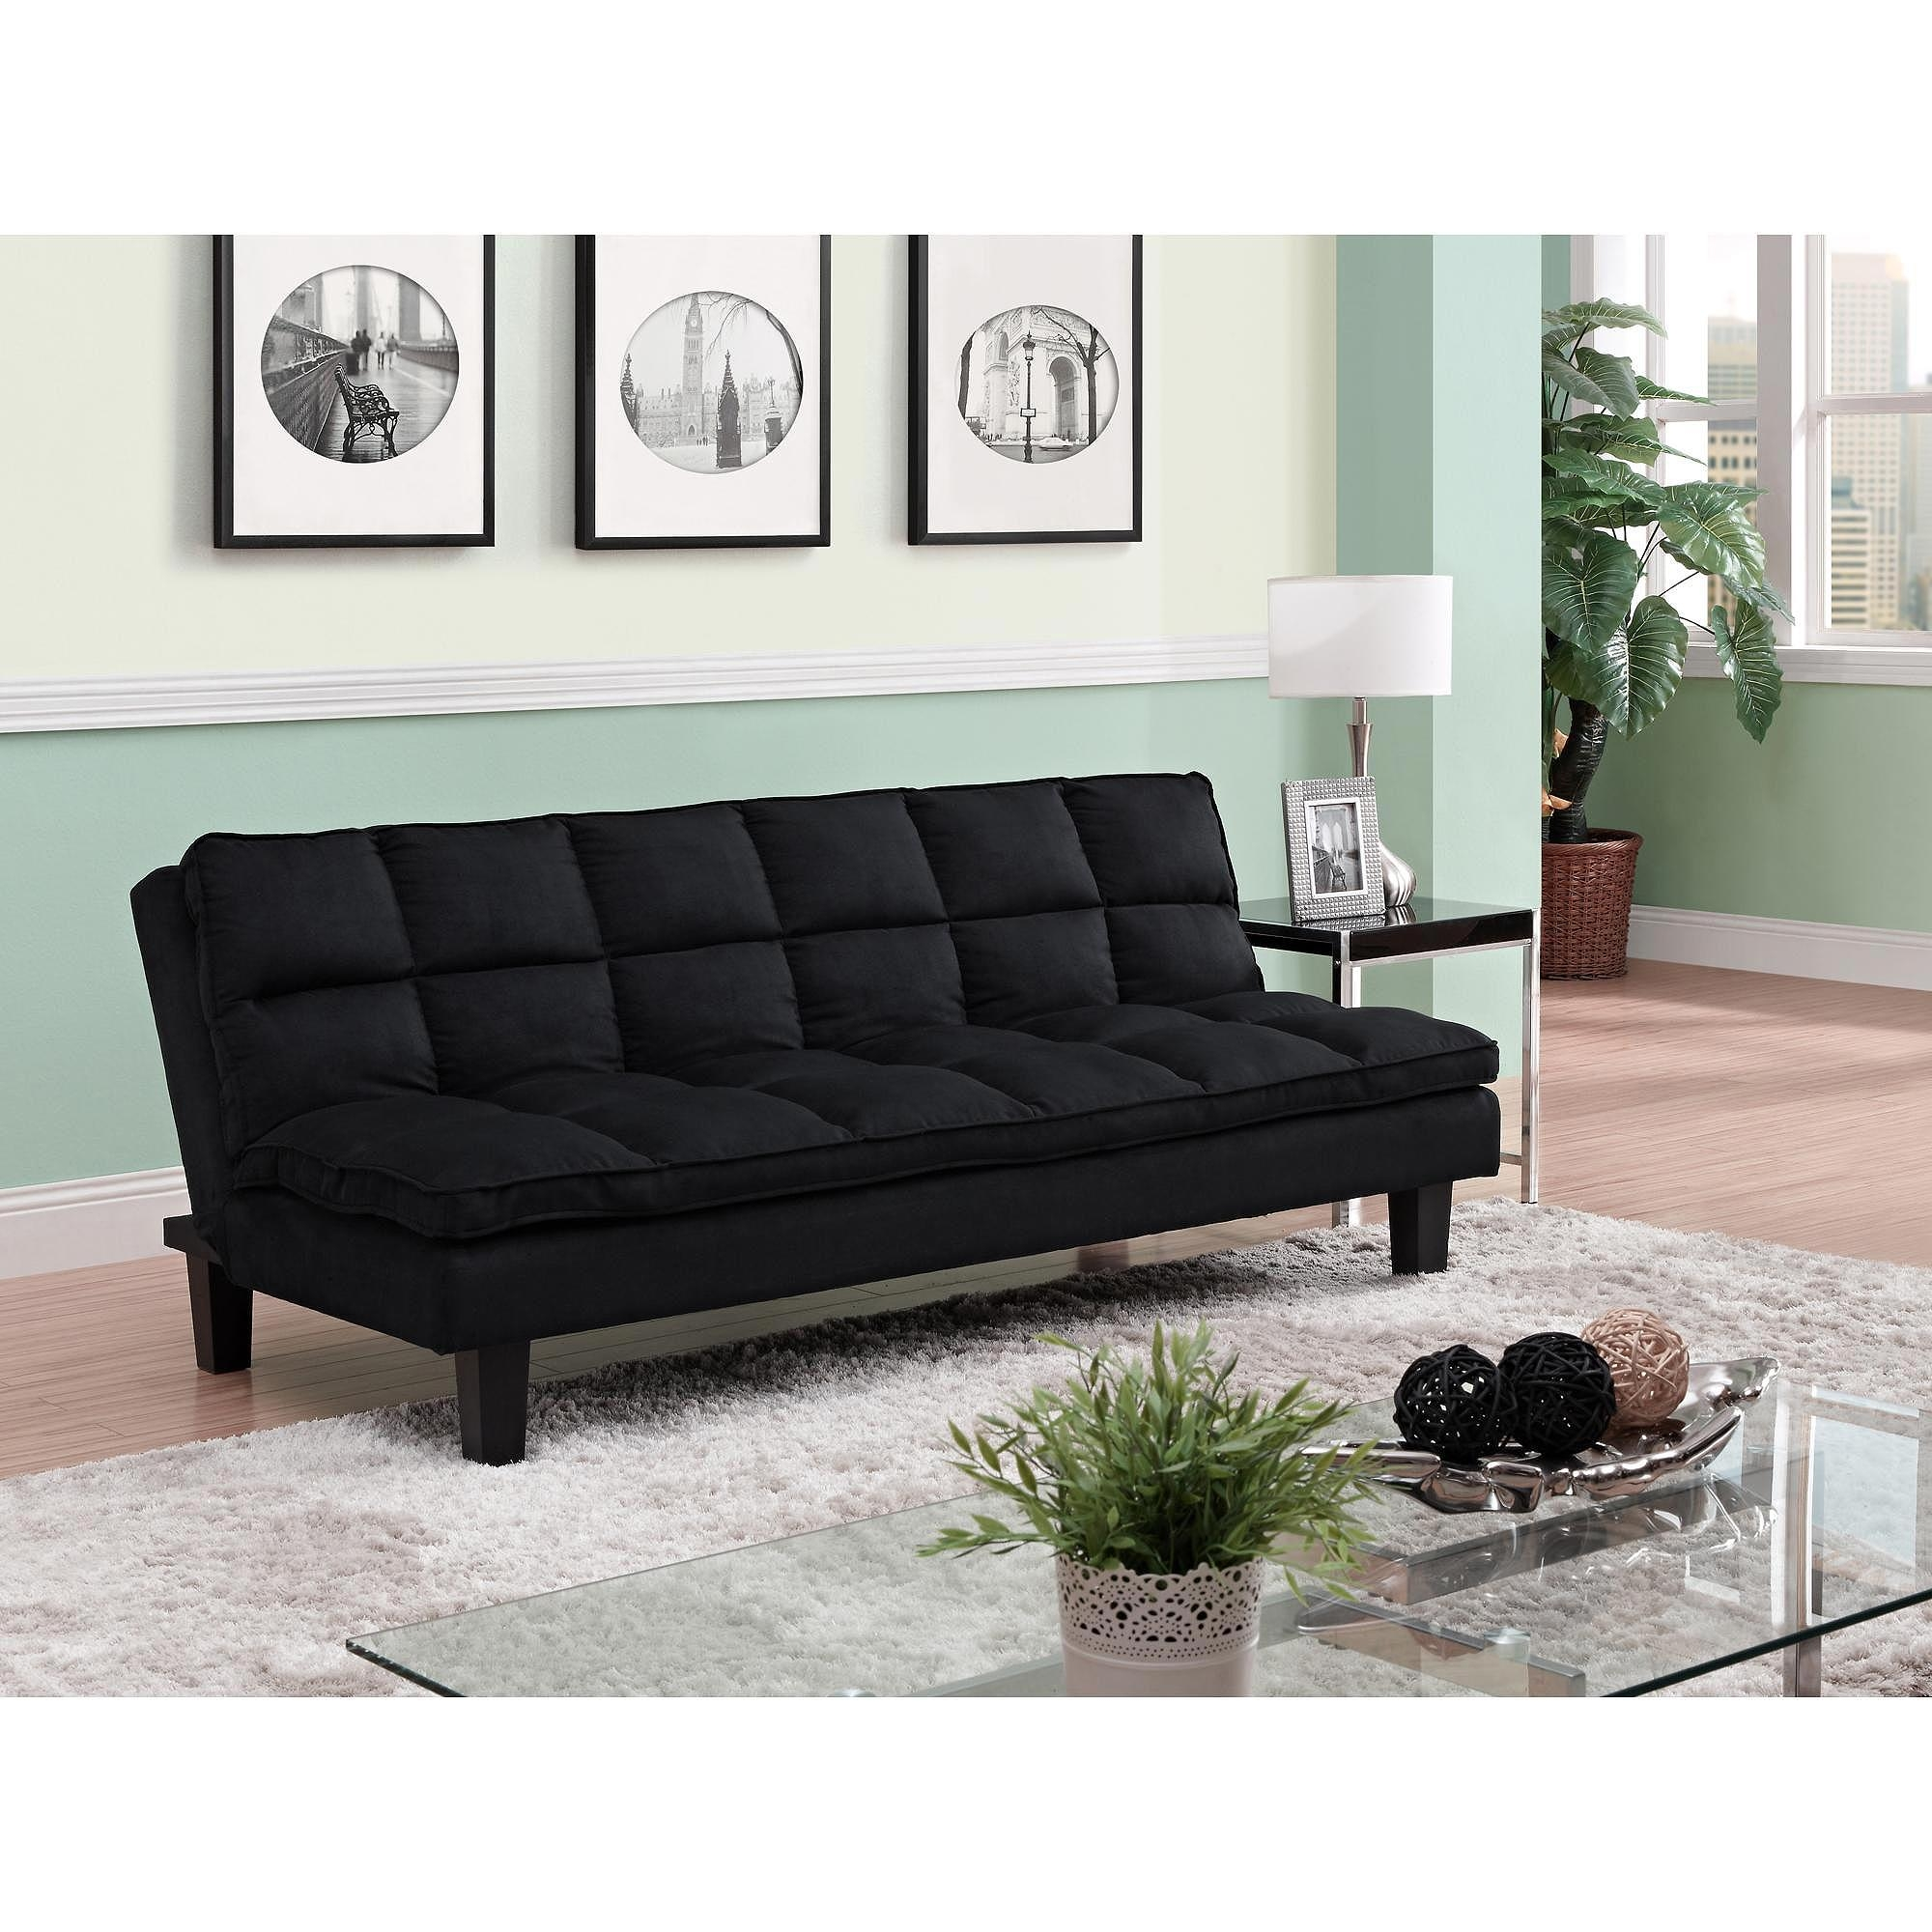 Sofa: Modern Look With A Low Profile Style With Walmart Sofa Bed In Convertible Futon Sofa Beds (View 11 of 20)